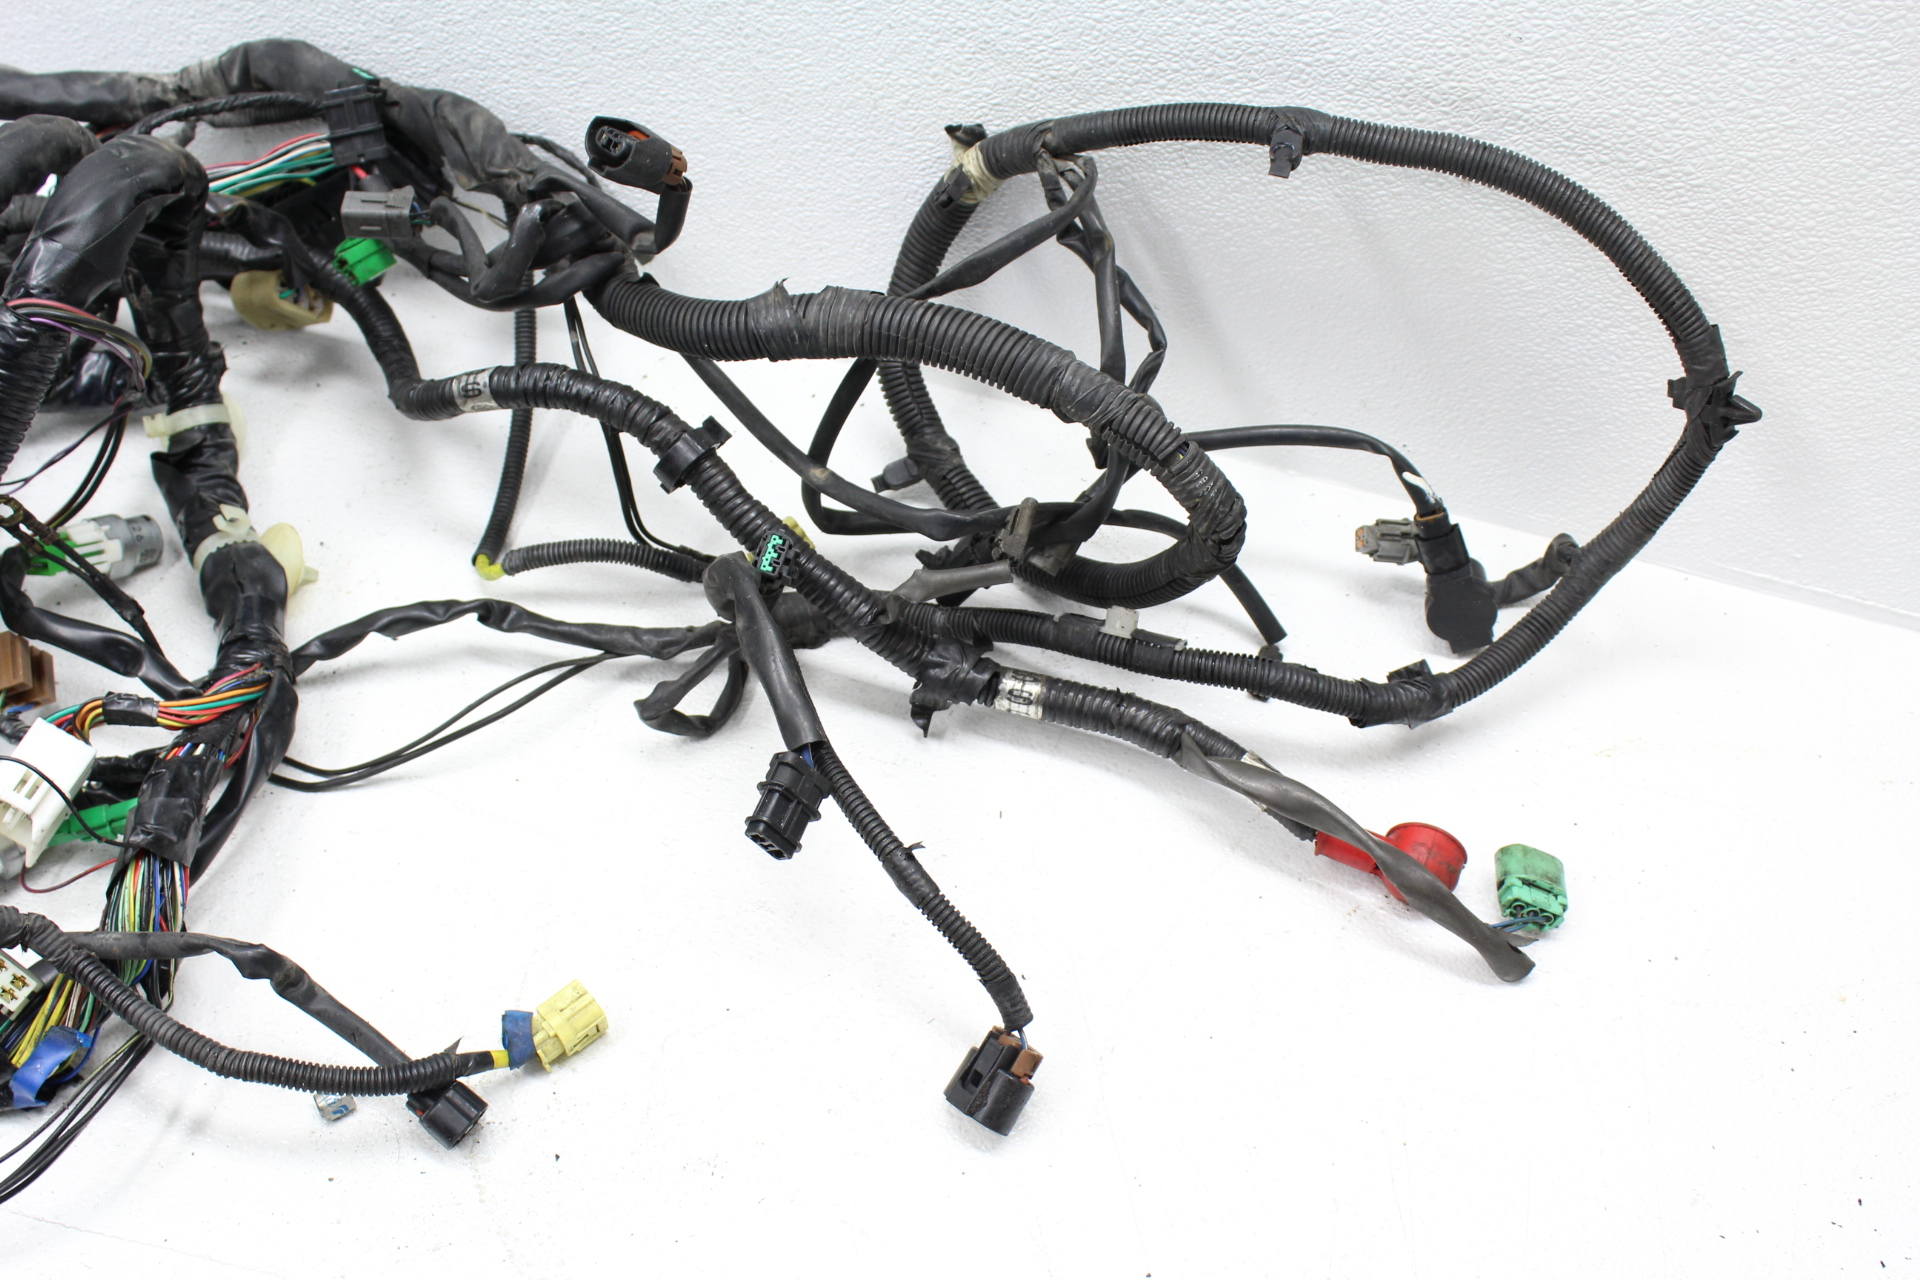 04 2004 subaru wrx sti bulk head wiring harness under dashboard rh subieautoparts com 2004 subaru sti wiring harness Engine Wiring Harness for 2008 Subaru Outback